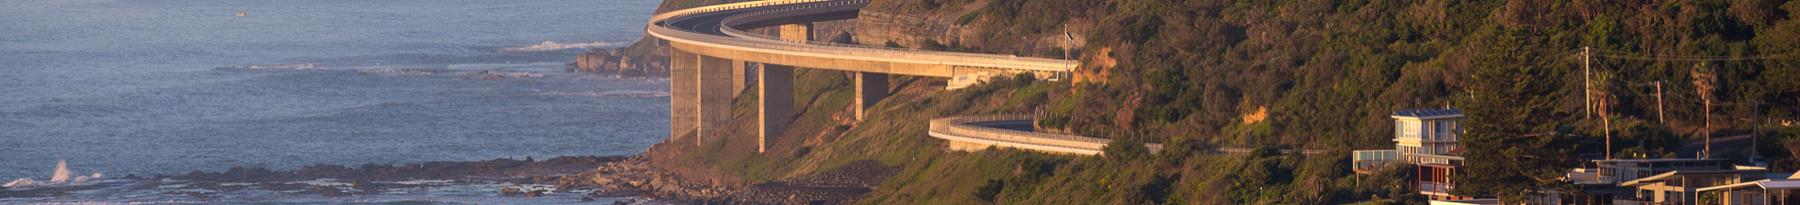 Scenic view of Seacliff Bridge Illawarra